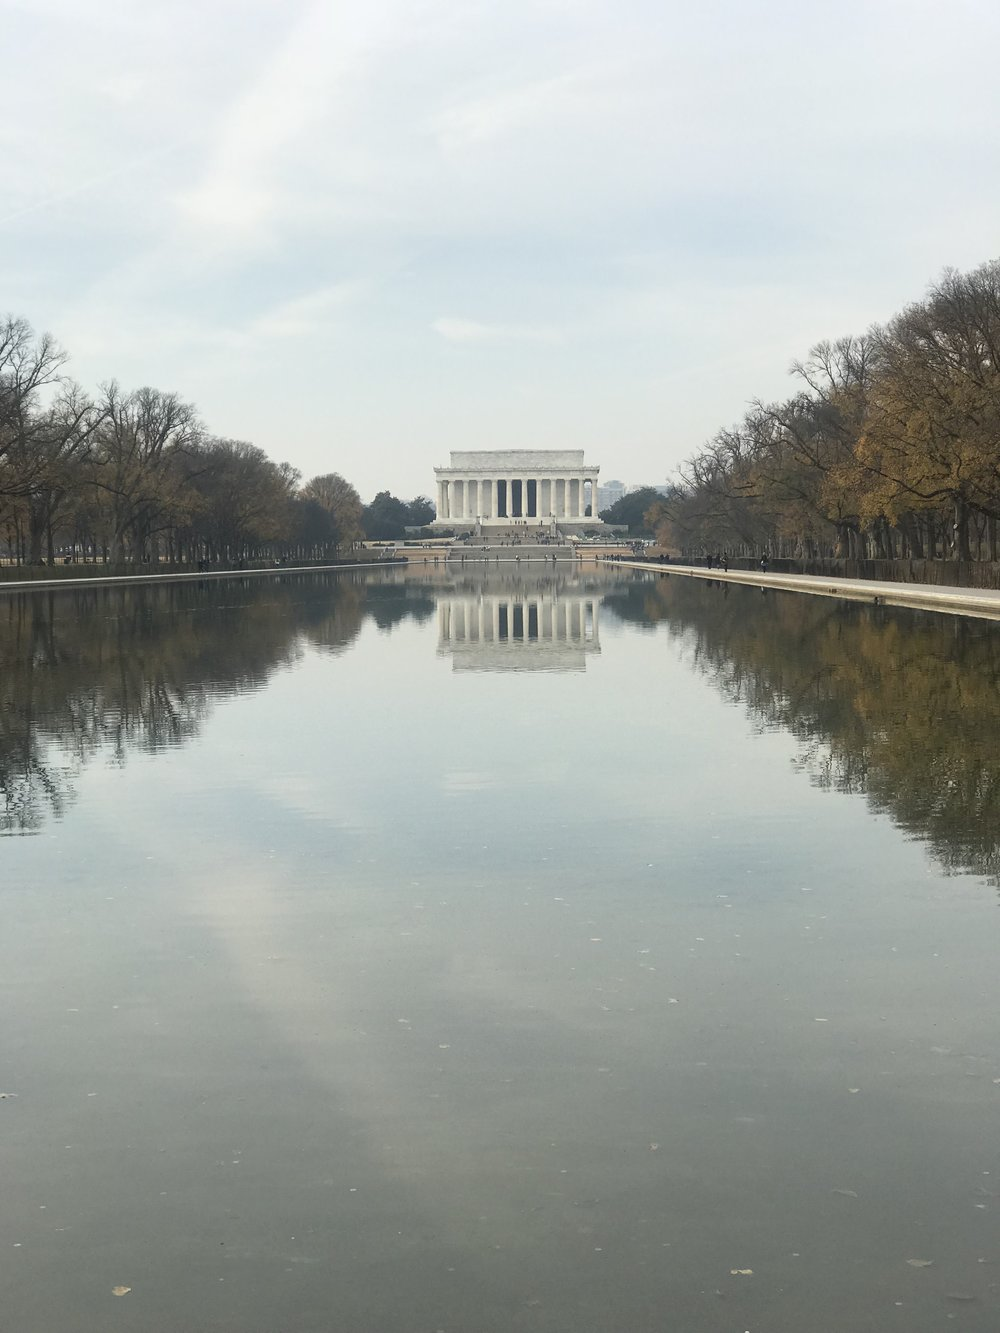 This view of the Lincoln Memorial is gorgeous! iPhone Camera ftw